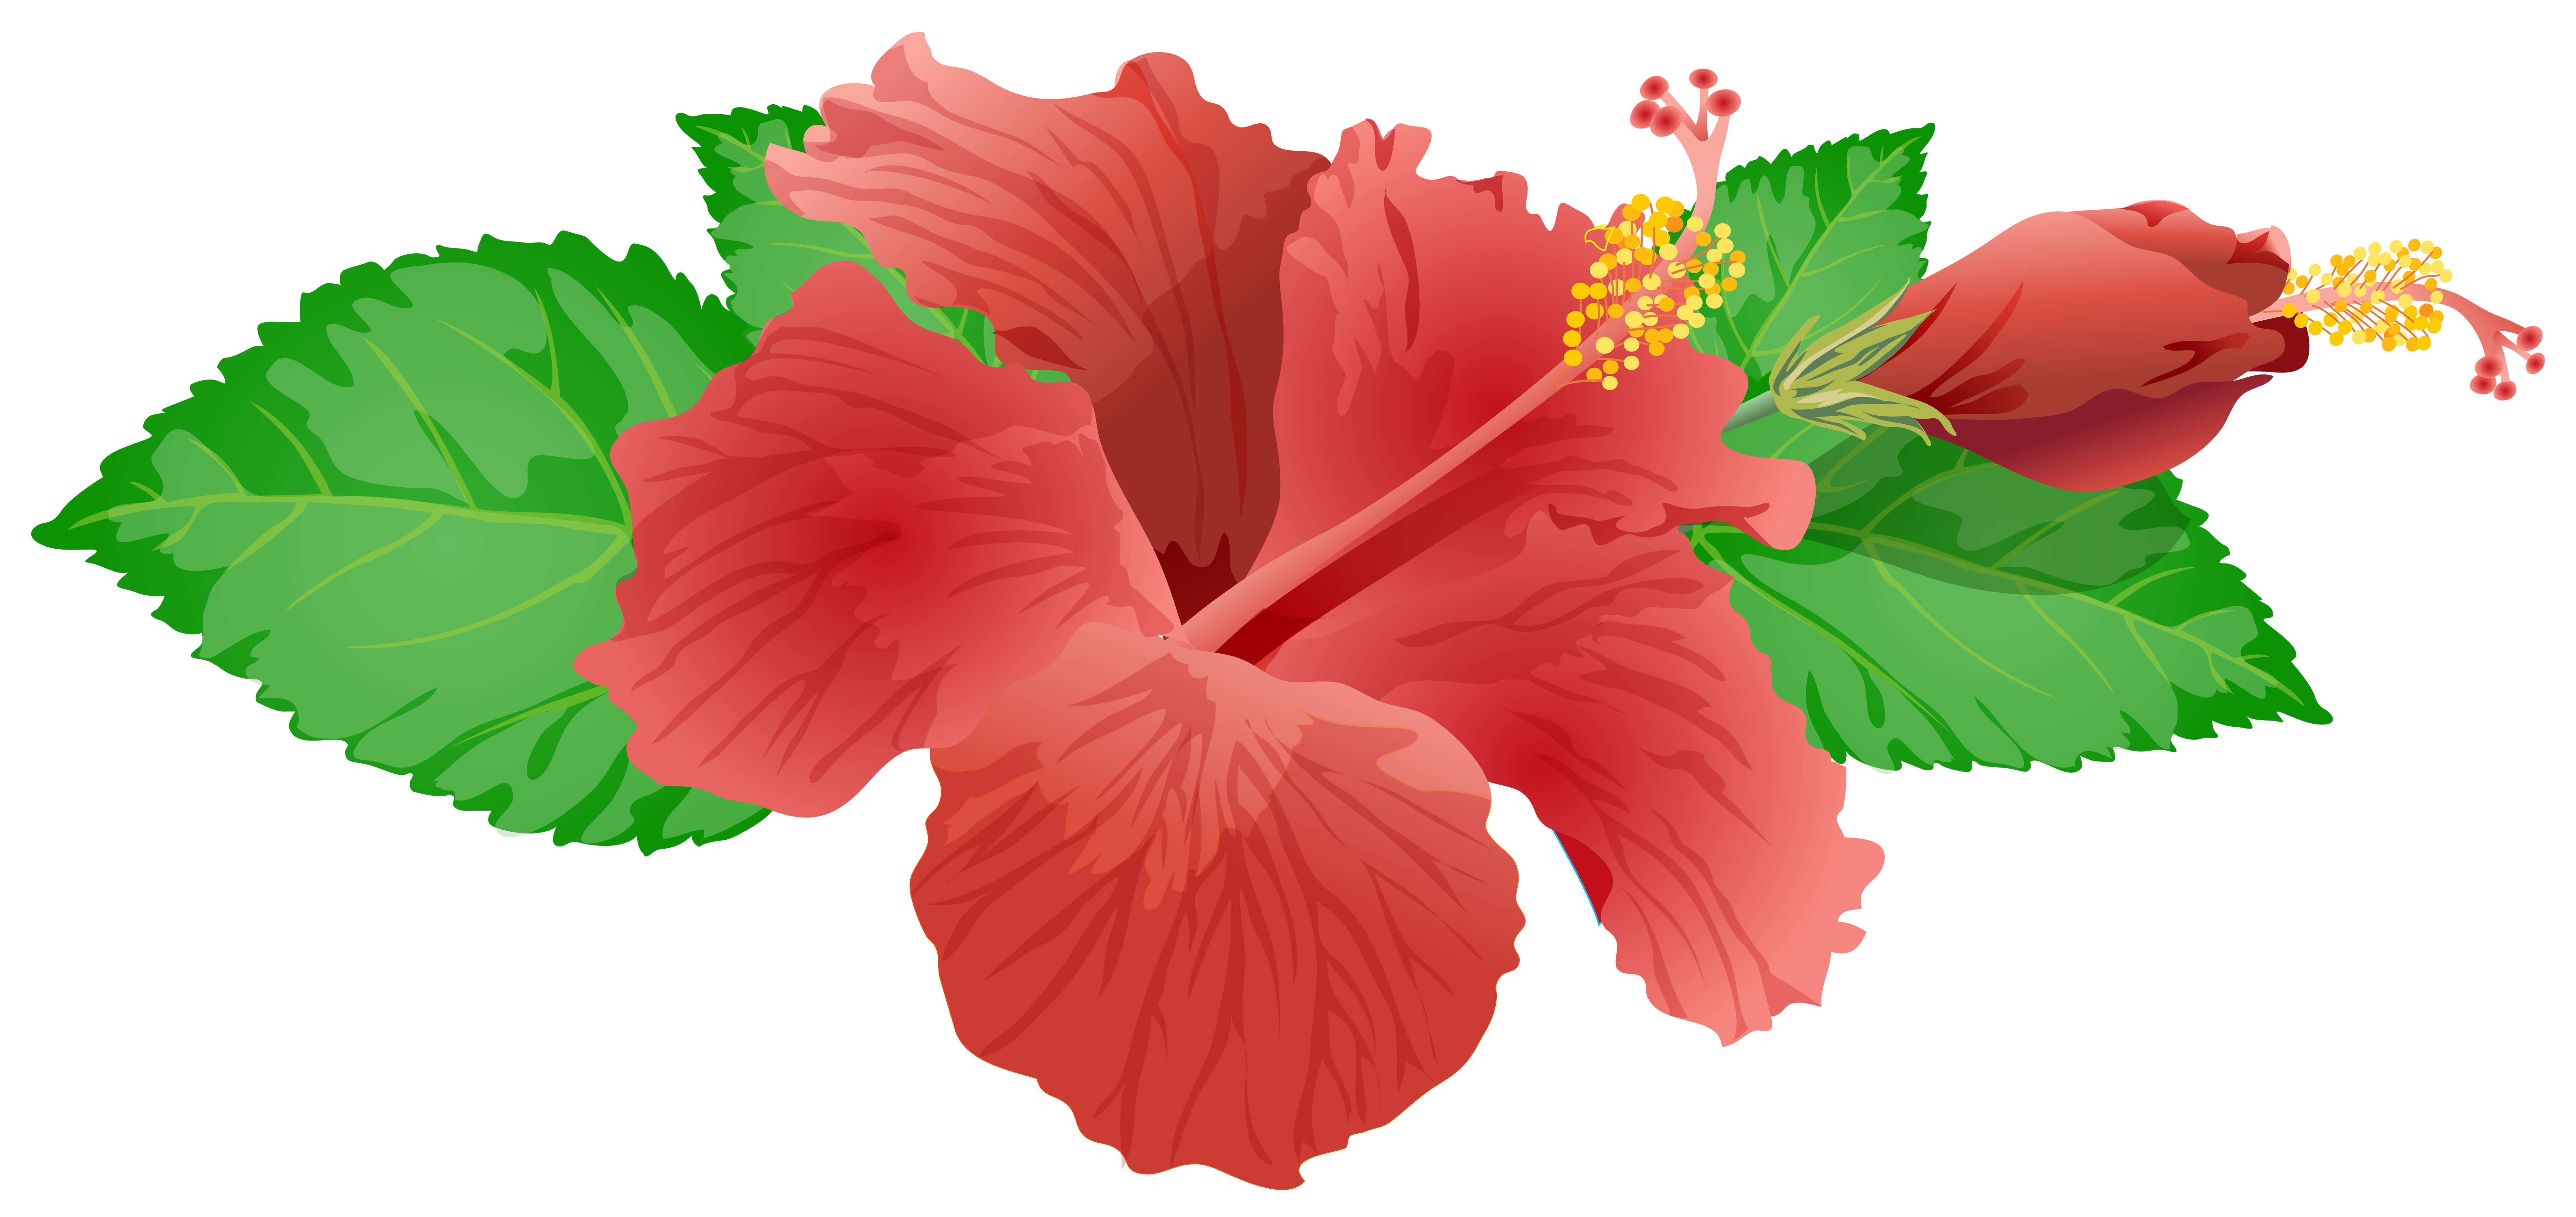 hibiscus flower png